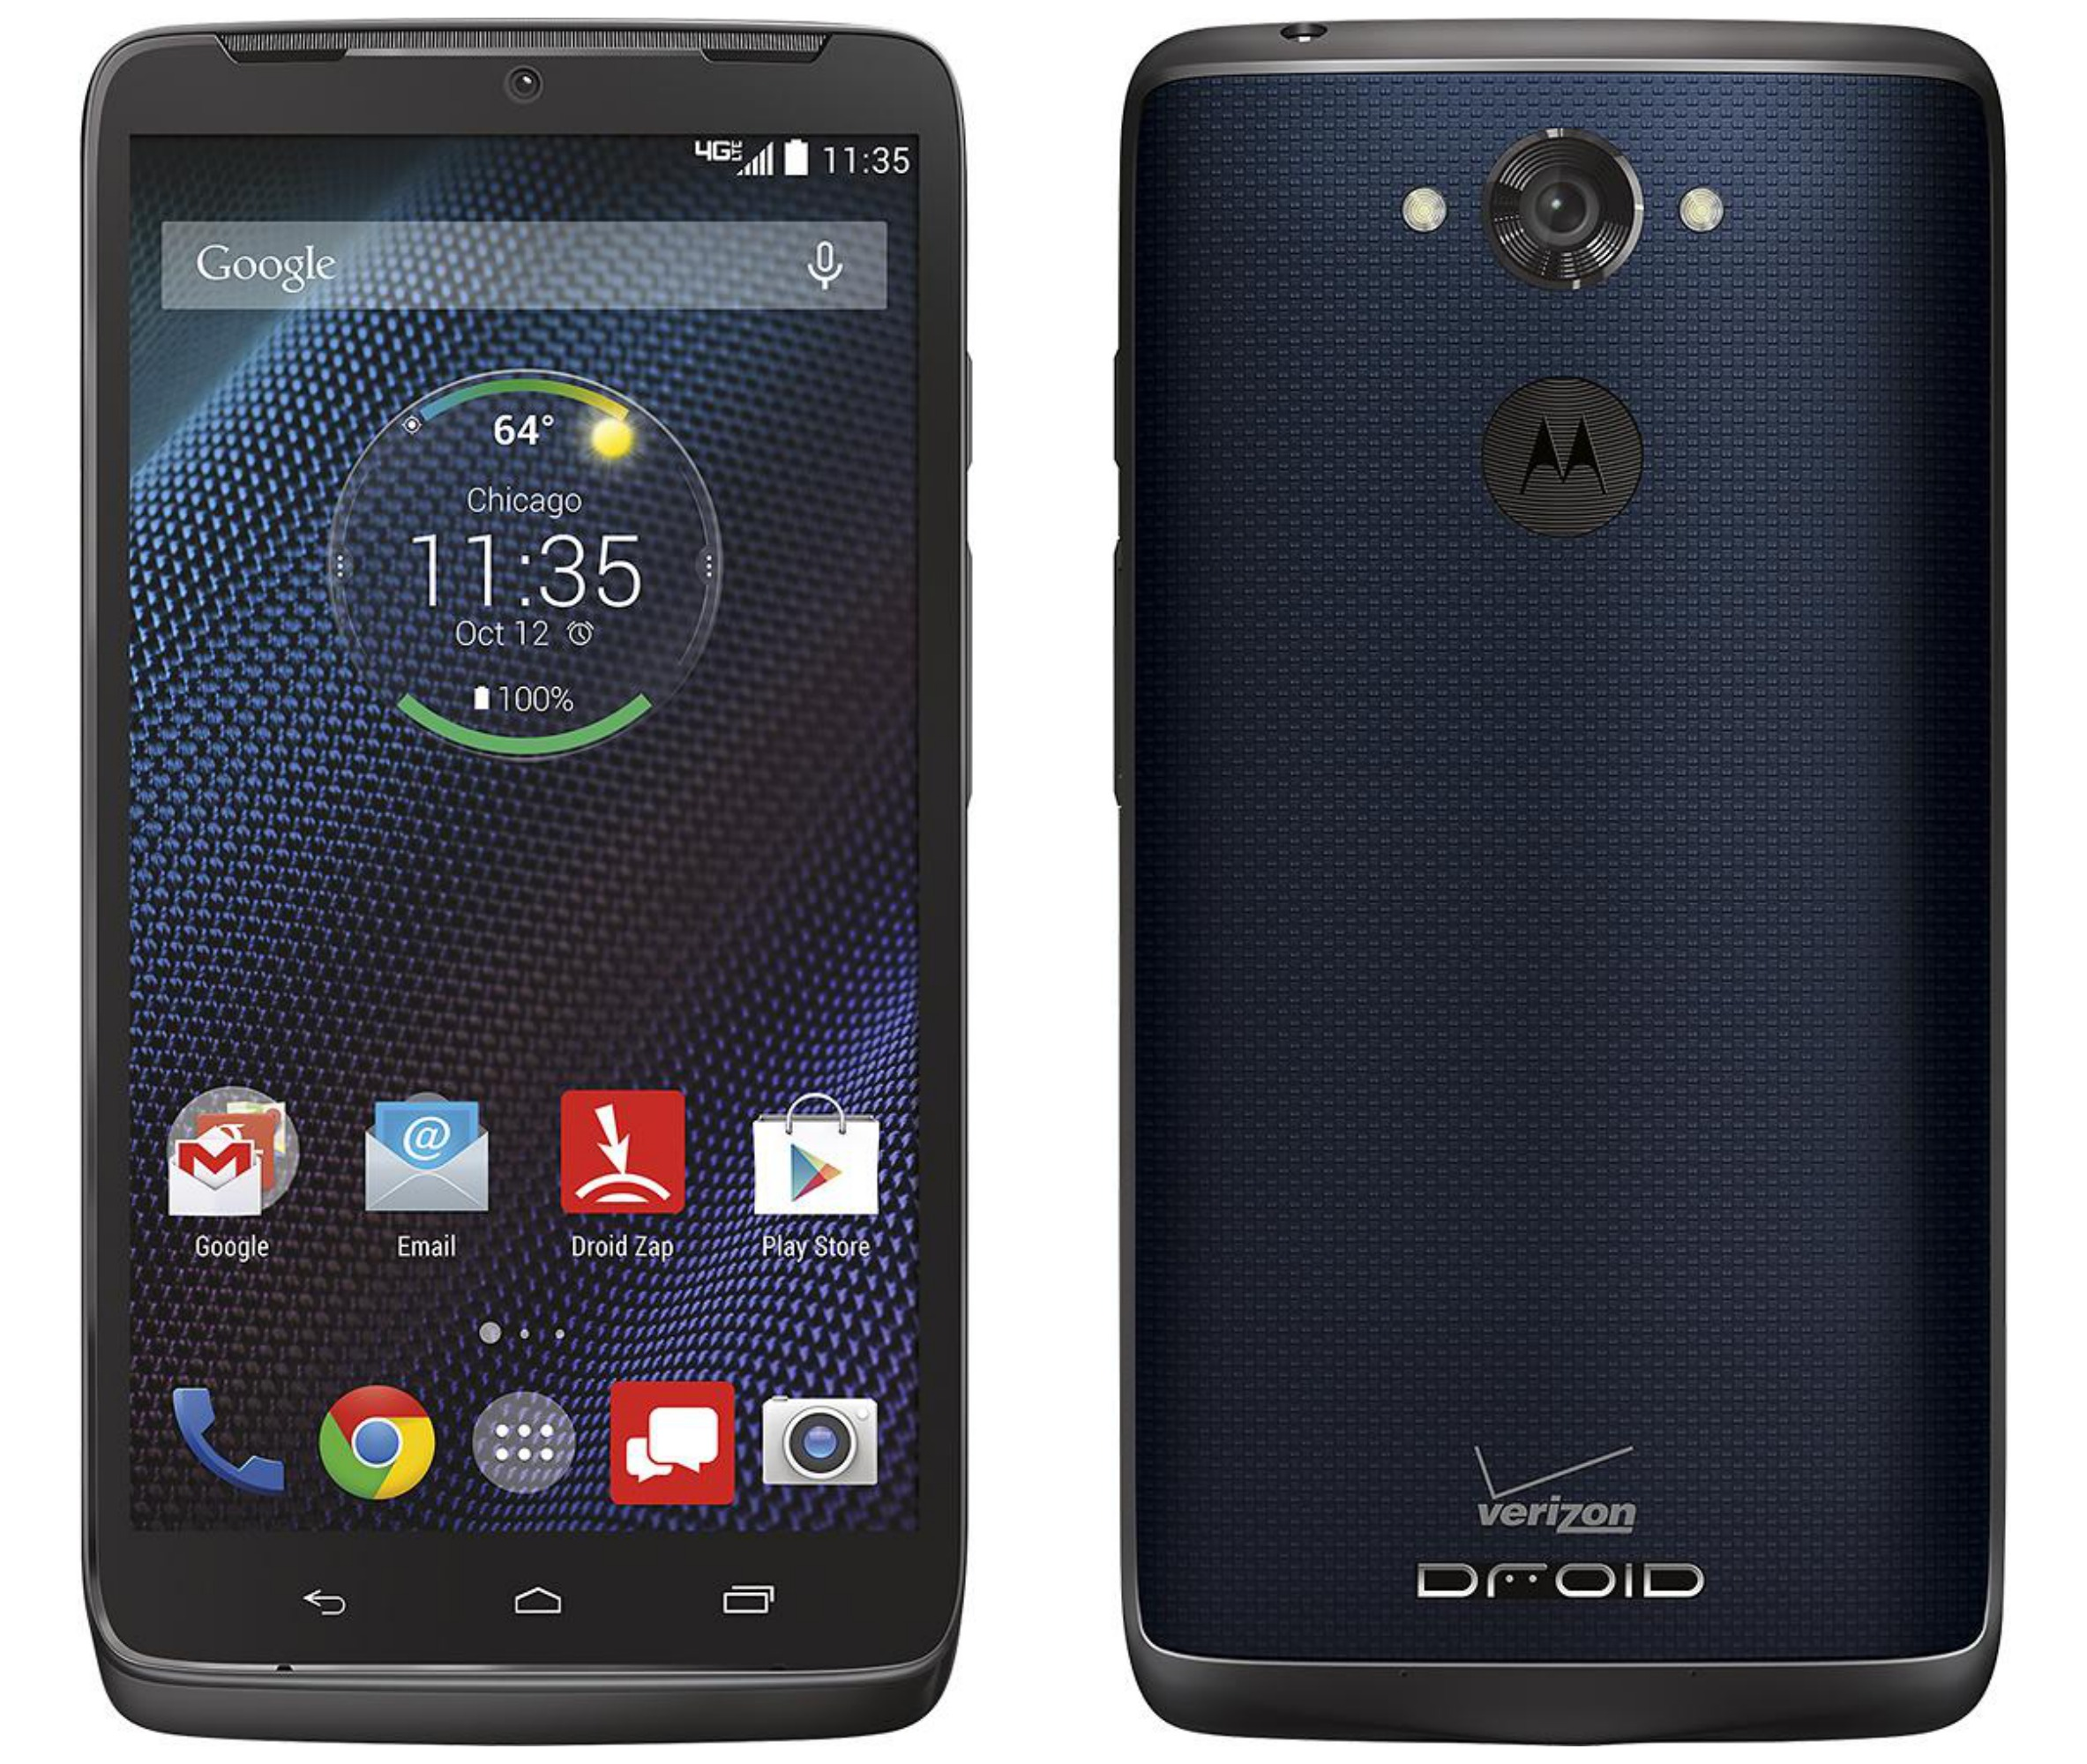 Buy Motorola DROID A Android Phone (Verizon Wireless): Unlocked Cell Phones - bauernhoftester.ml FREE DELIVERY possible on eligible purchases.